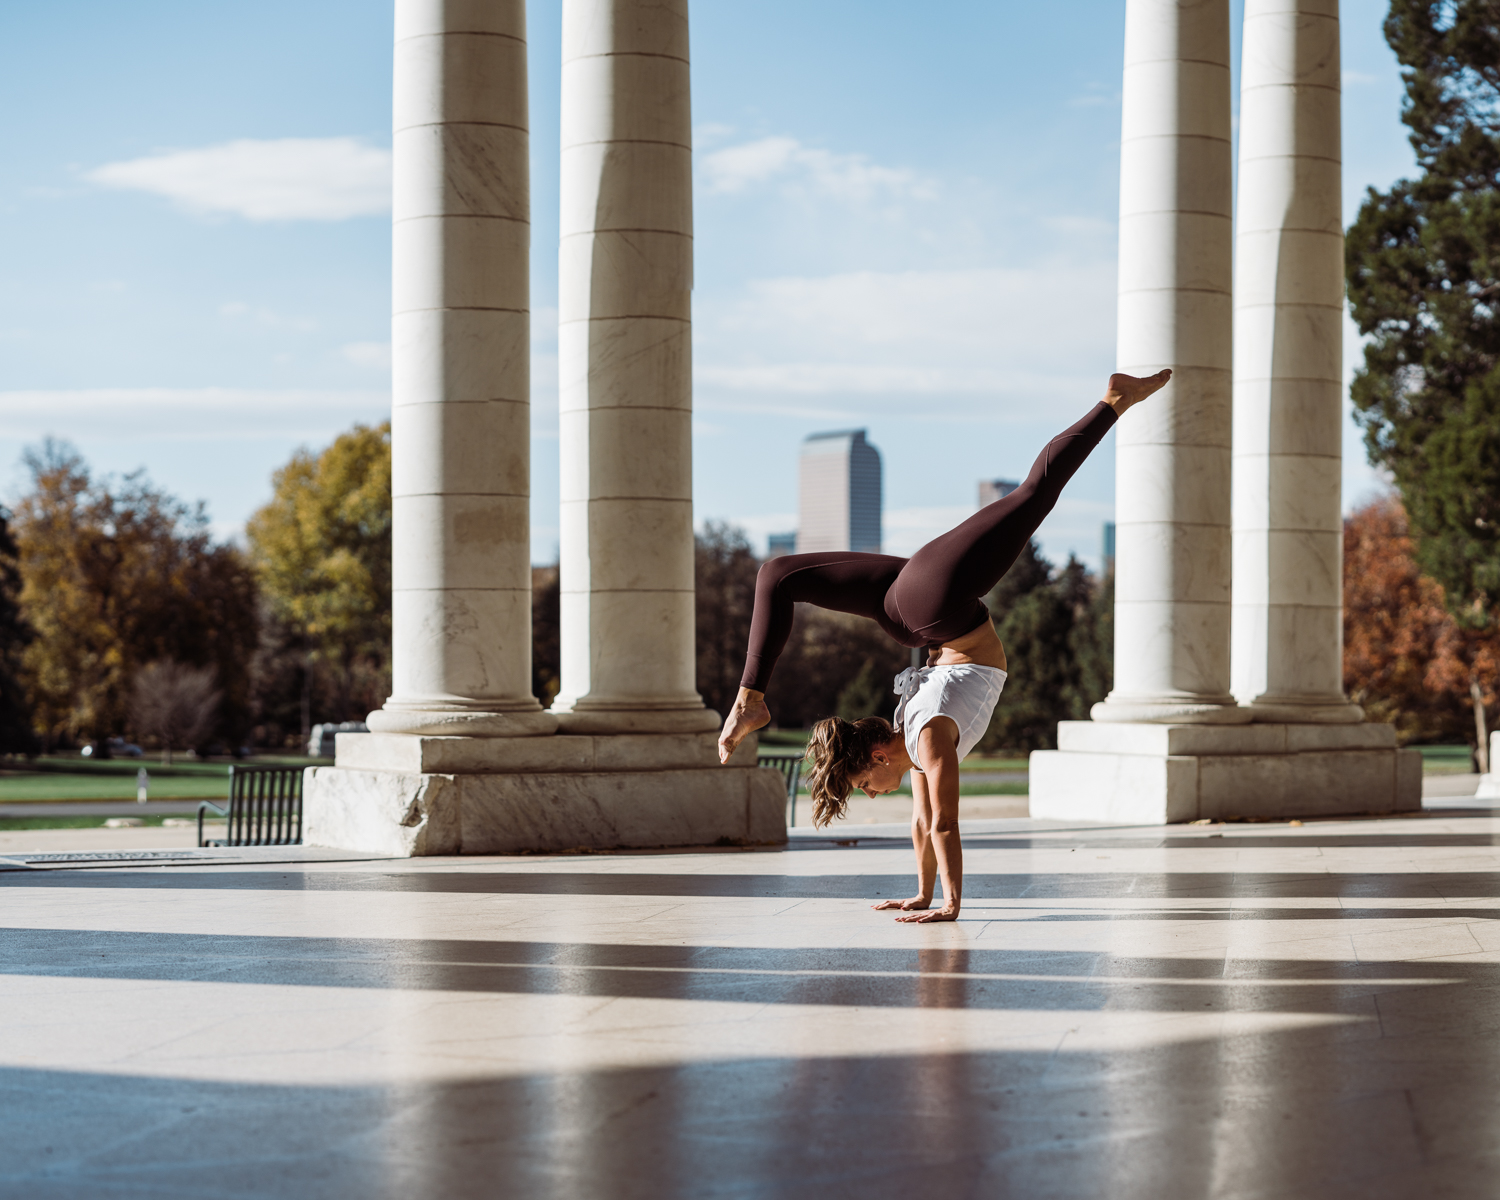 Handstand-Cheeseman-Denver-Colorado.jpg